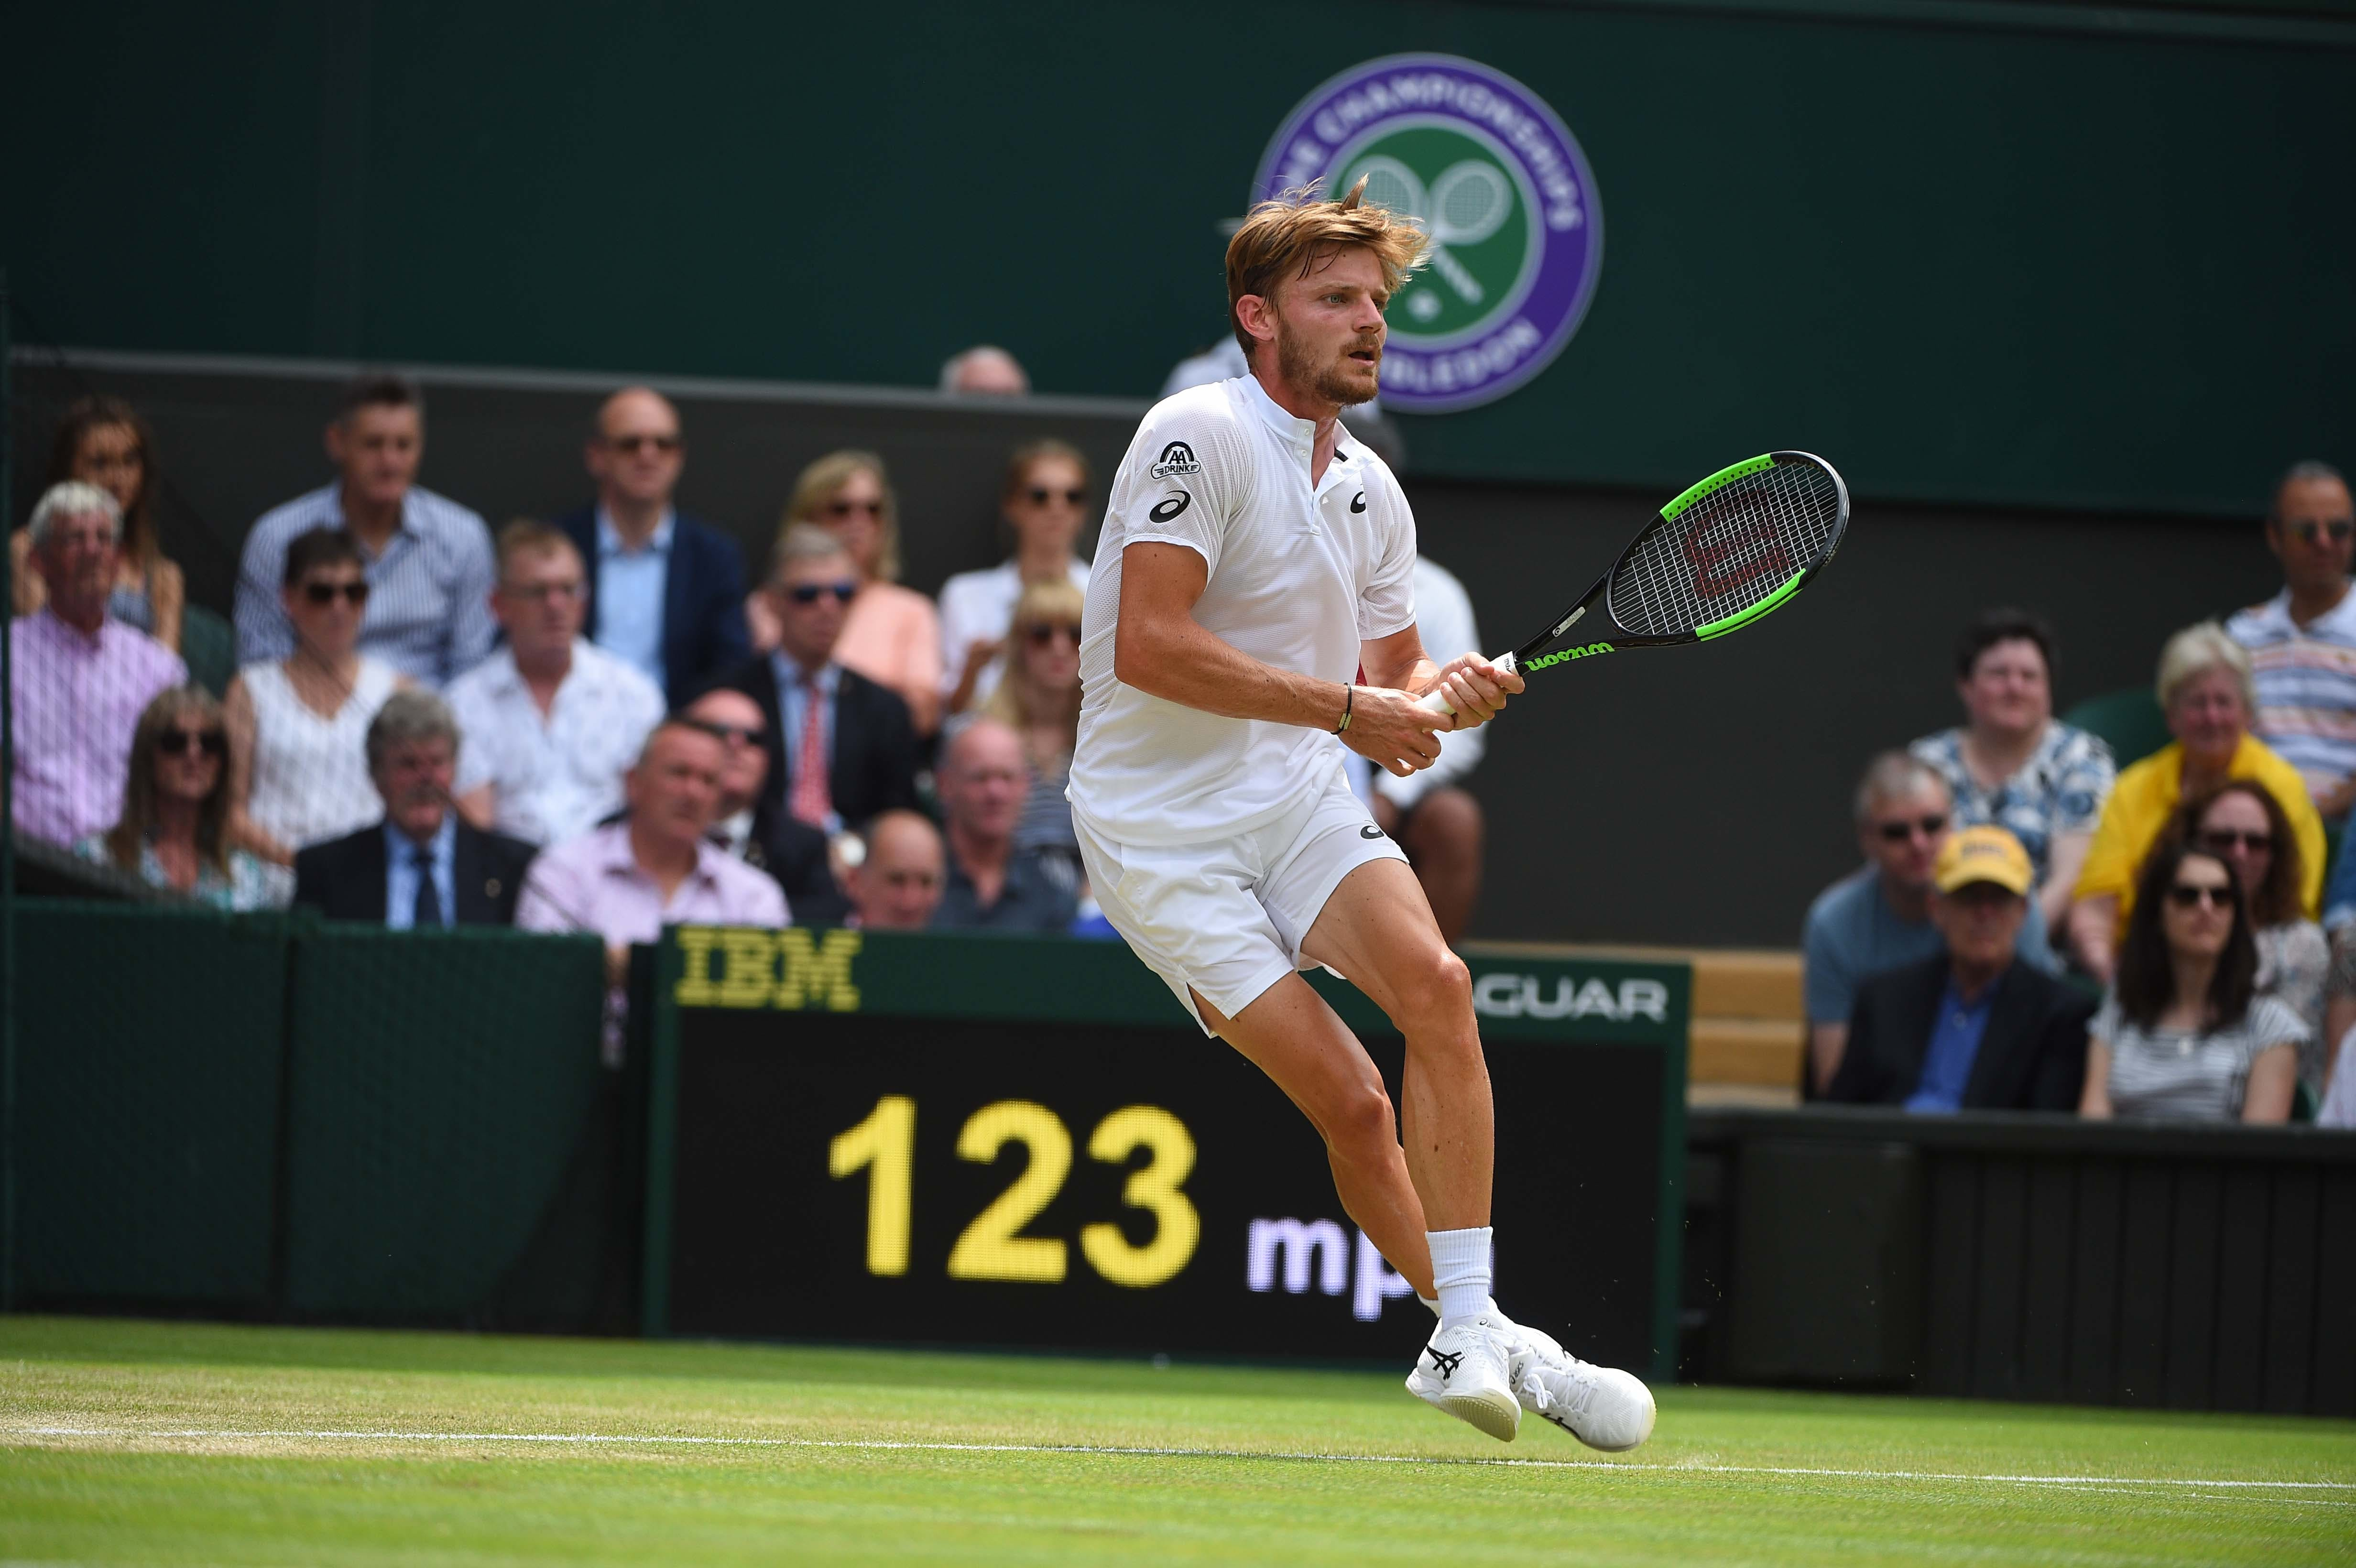 David Goffin at Wimbledon 2019.